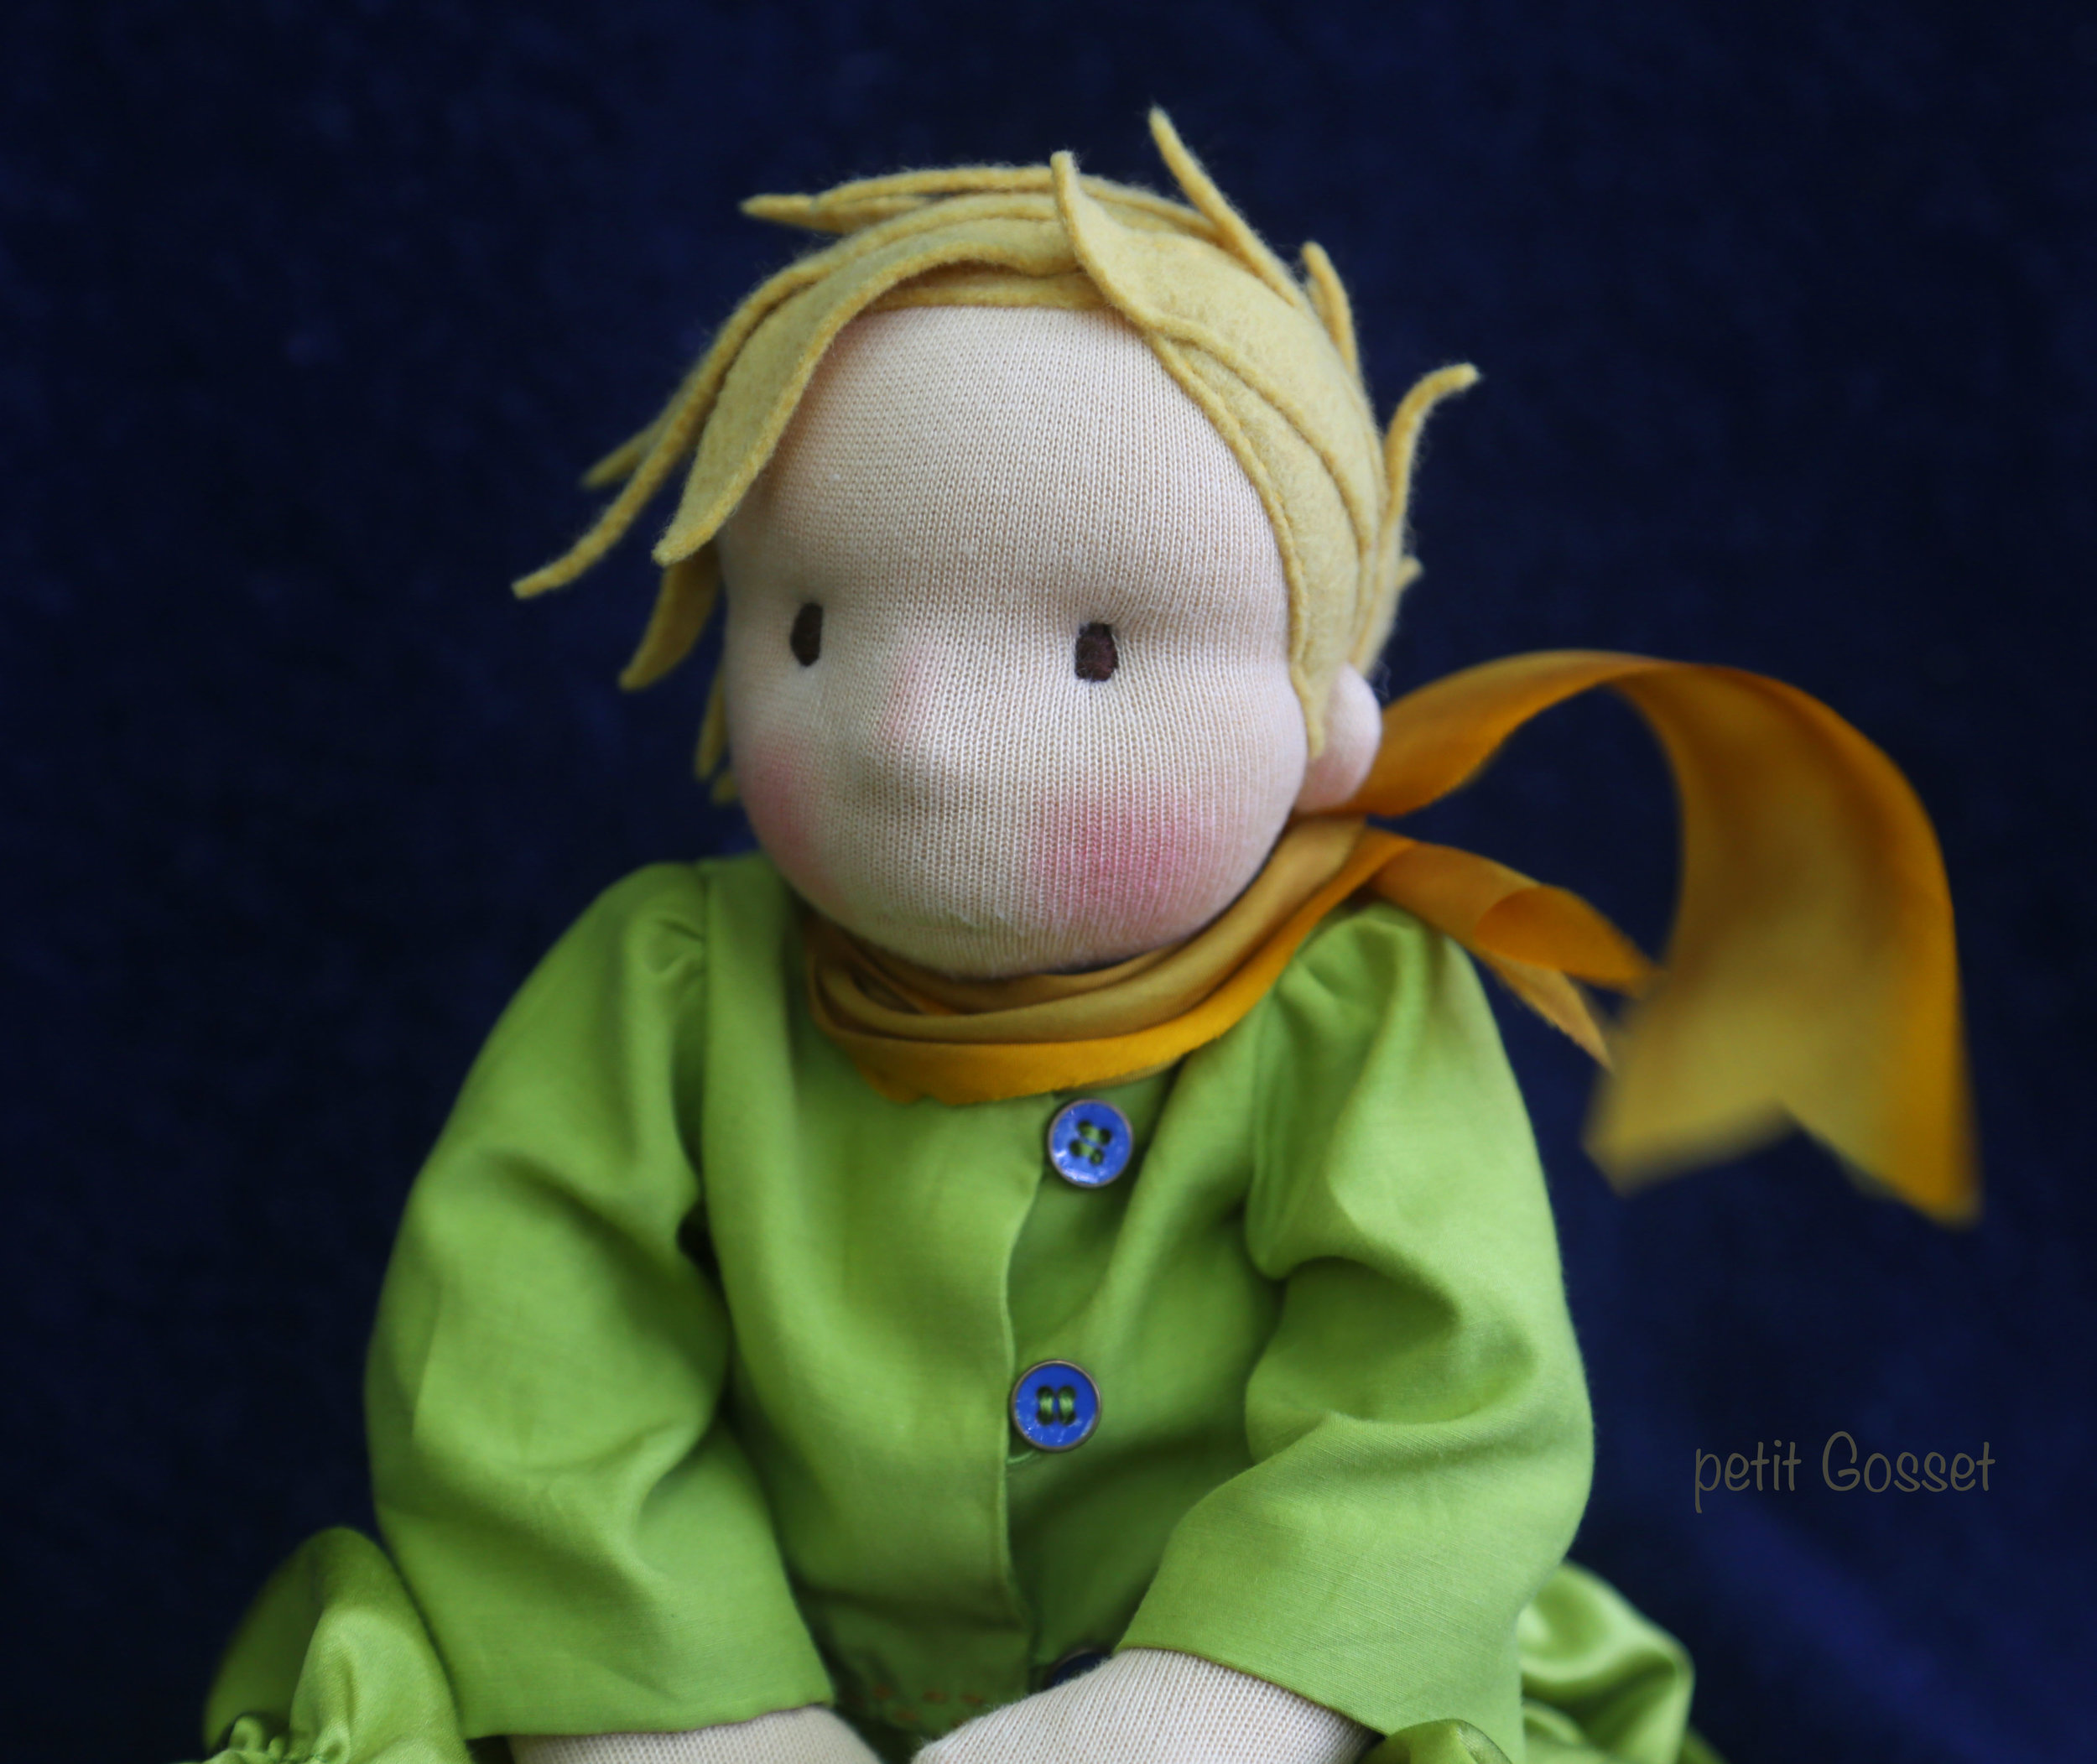 Le Petit Prince Inspired, by Petit Gosset